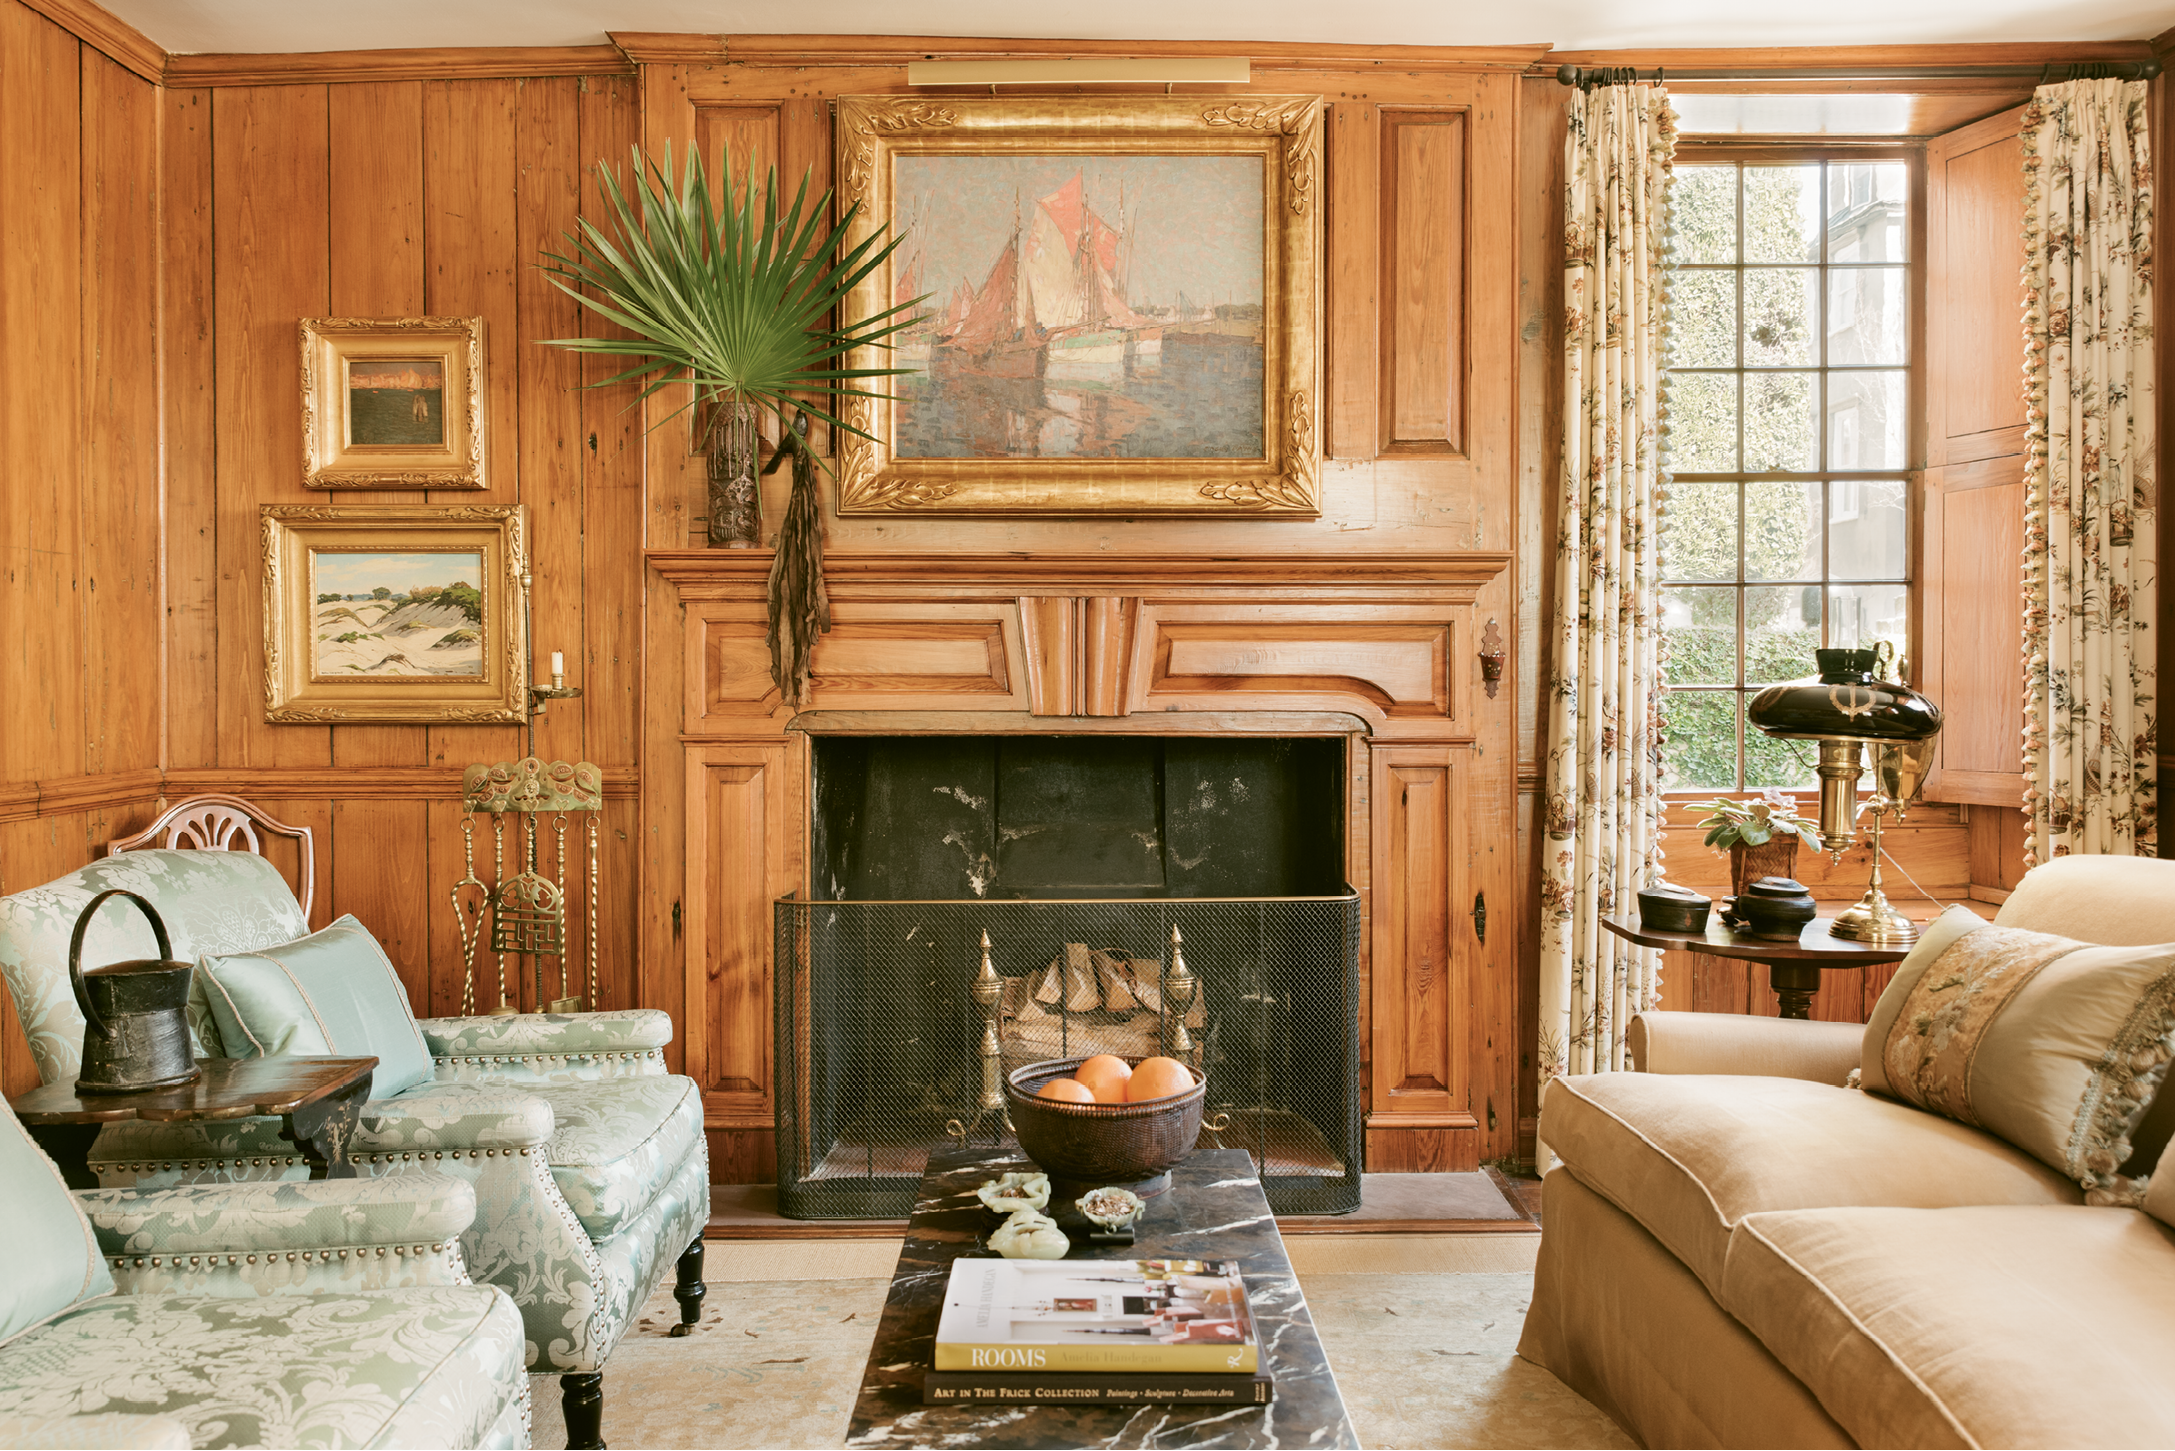 At one point, the original cypress paneling in this room was hidden under more than 20 layers of paint; upon moving in, the Seegers hired artisans to continue the previous owner's restoration of the wood.